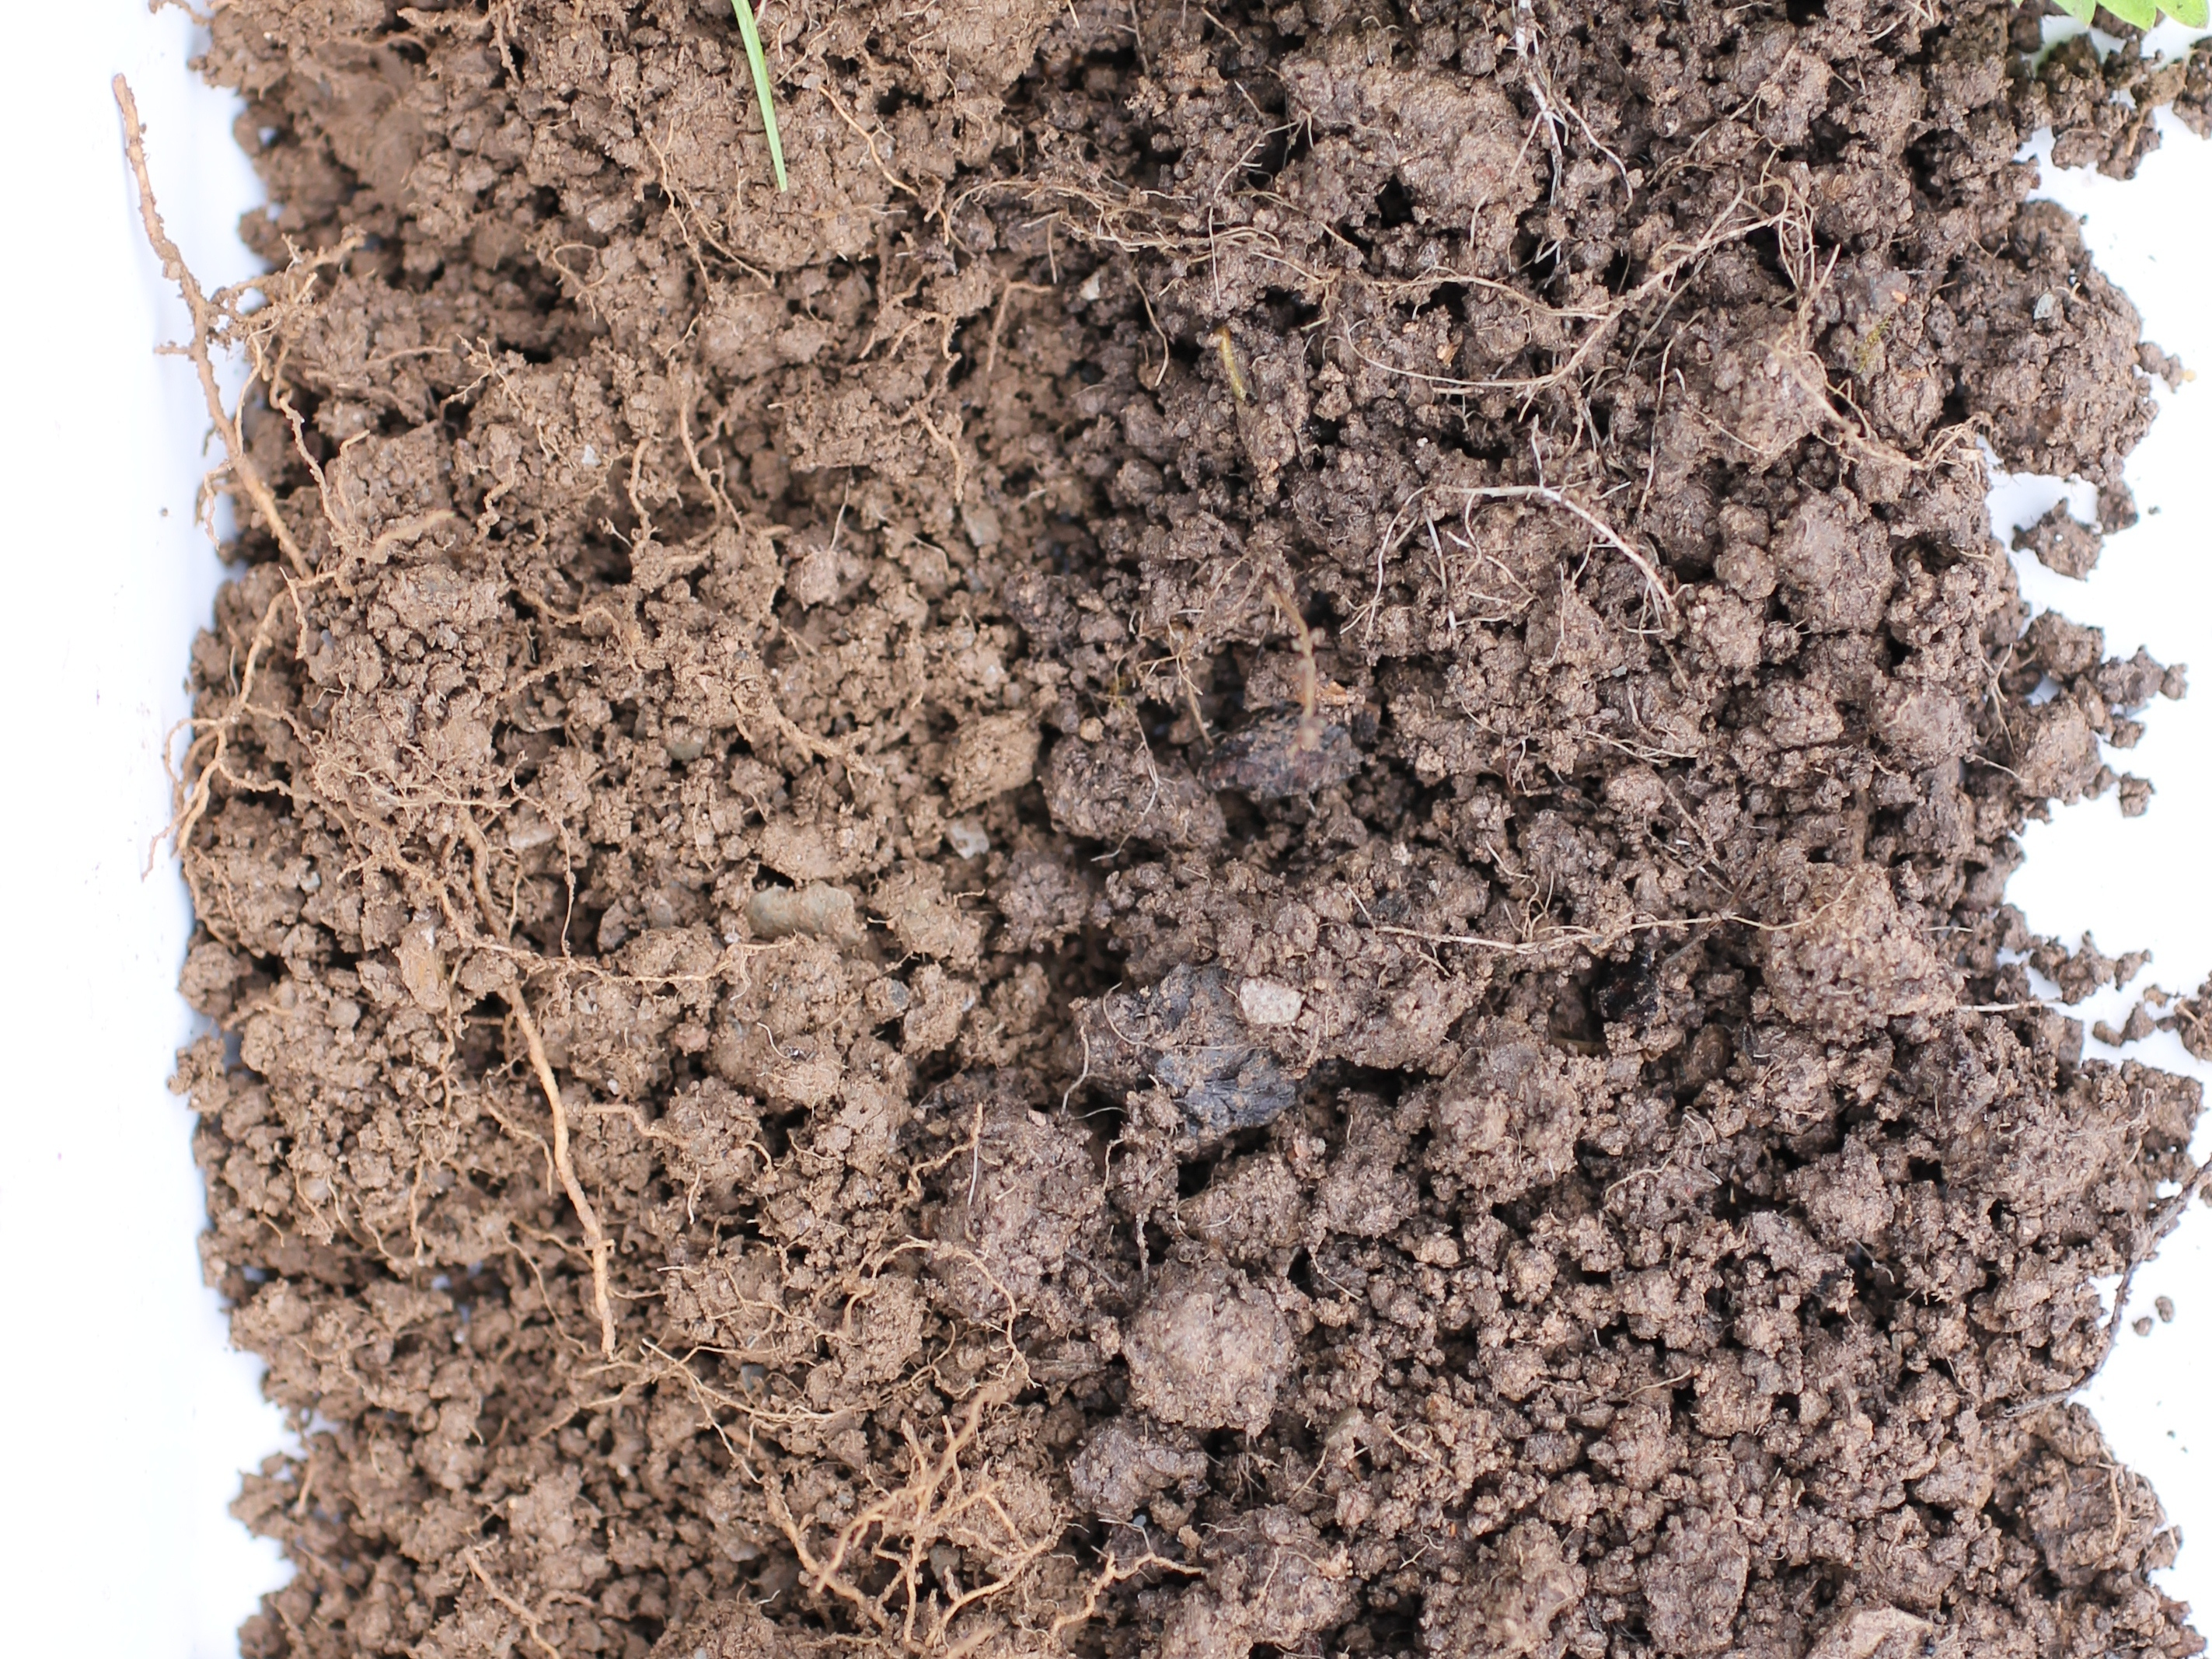 A photo of two different soils side by side. The one on the left is much lighter in colour.